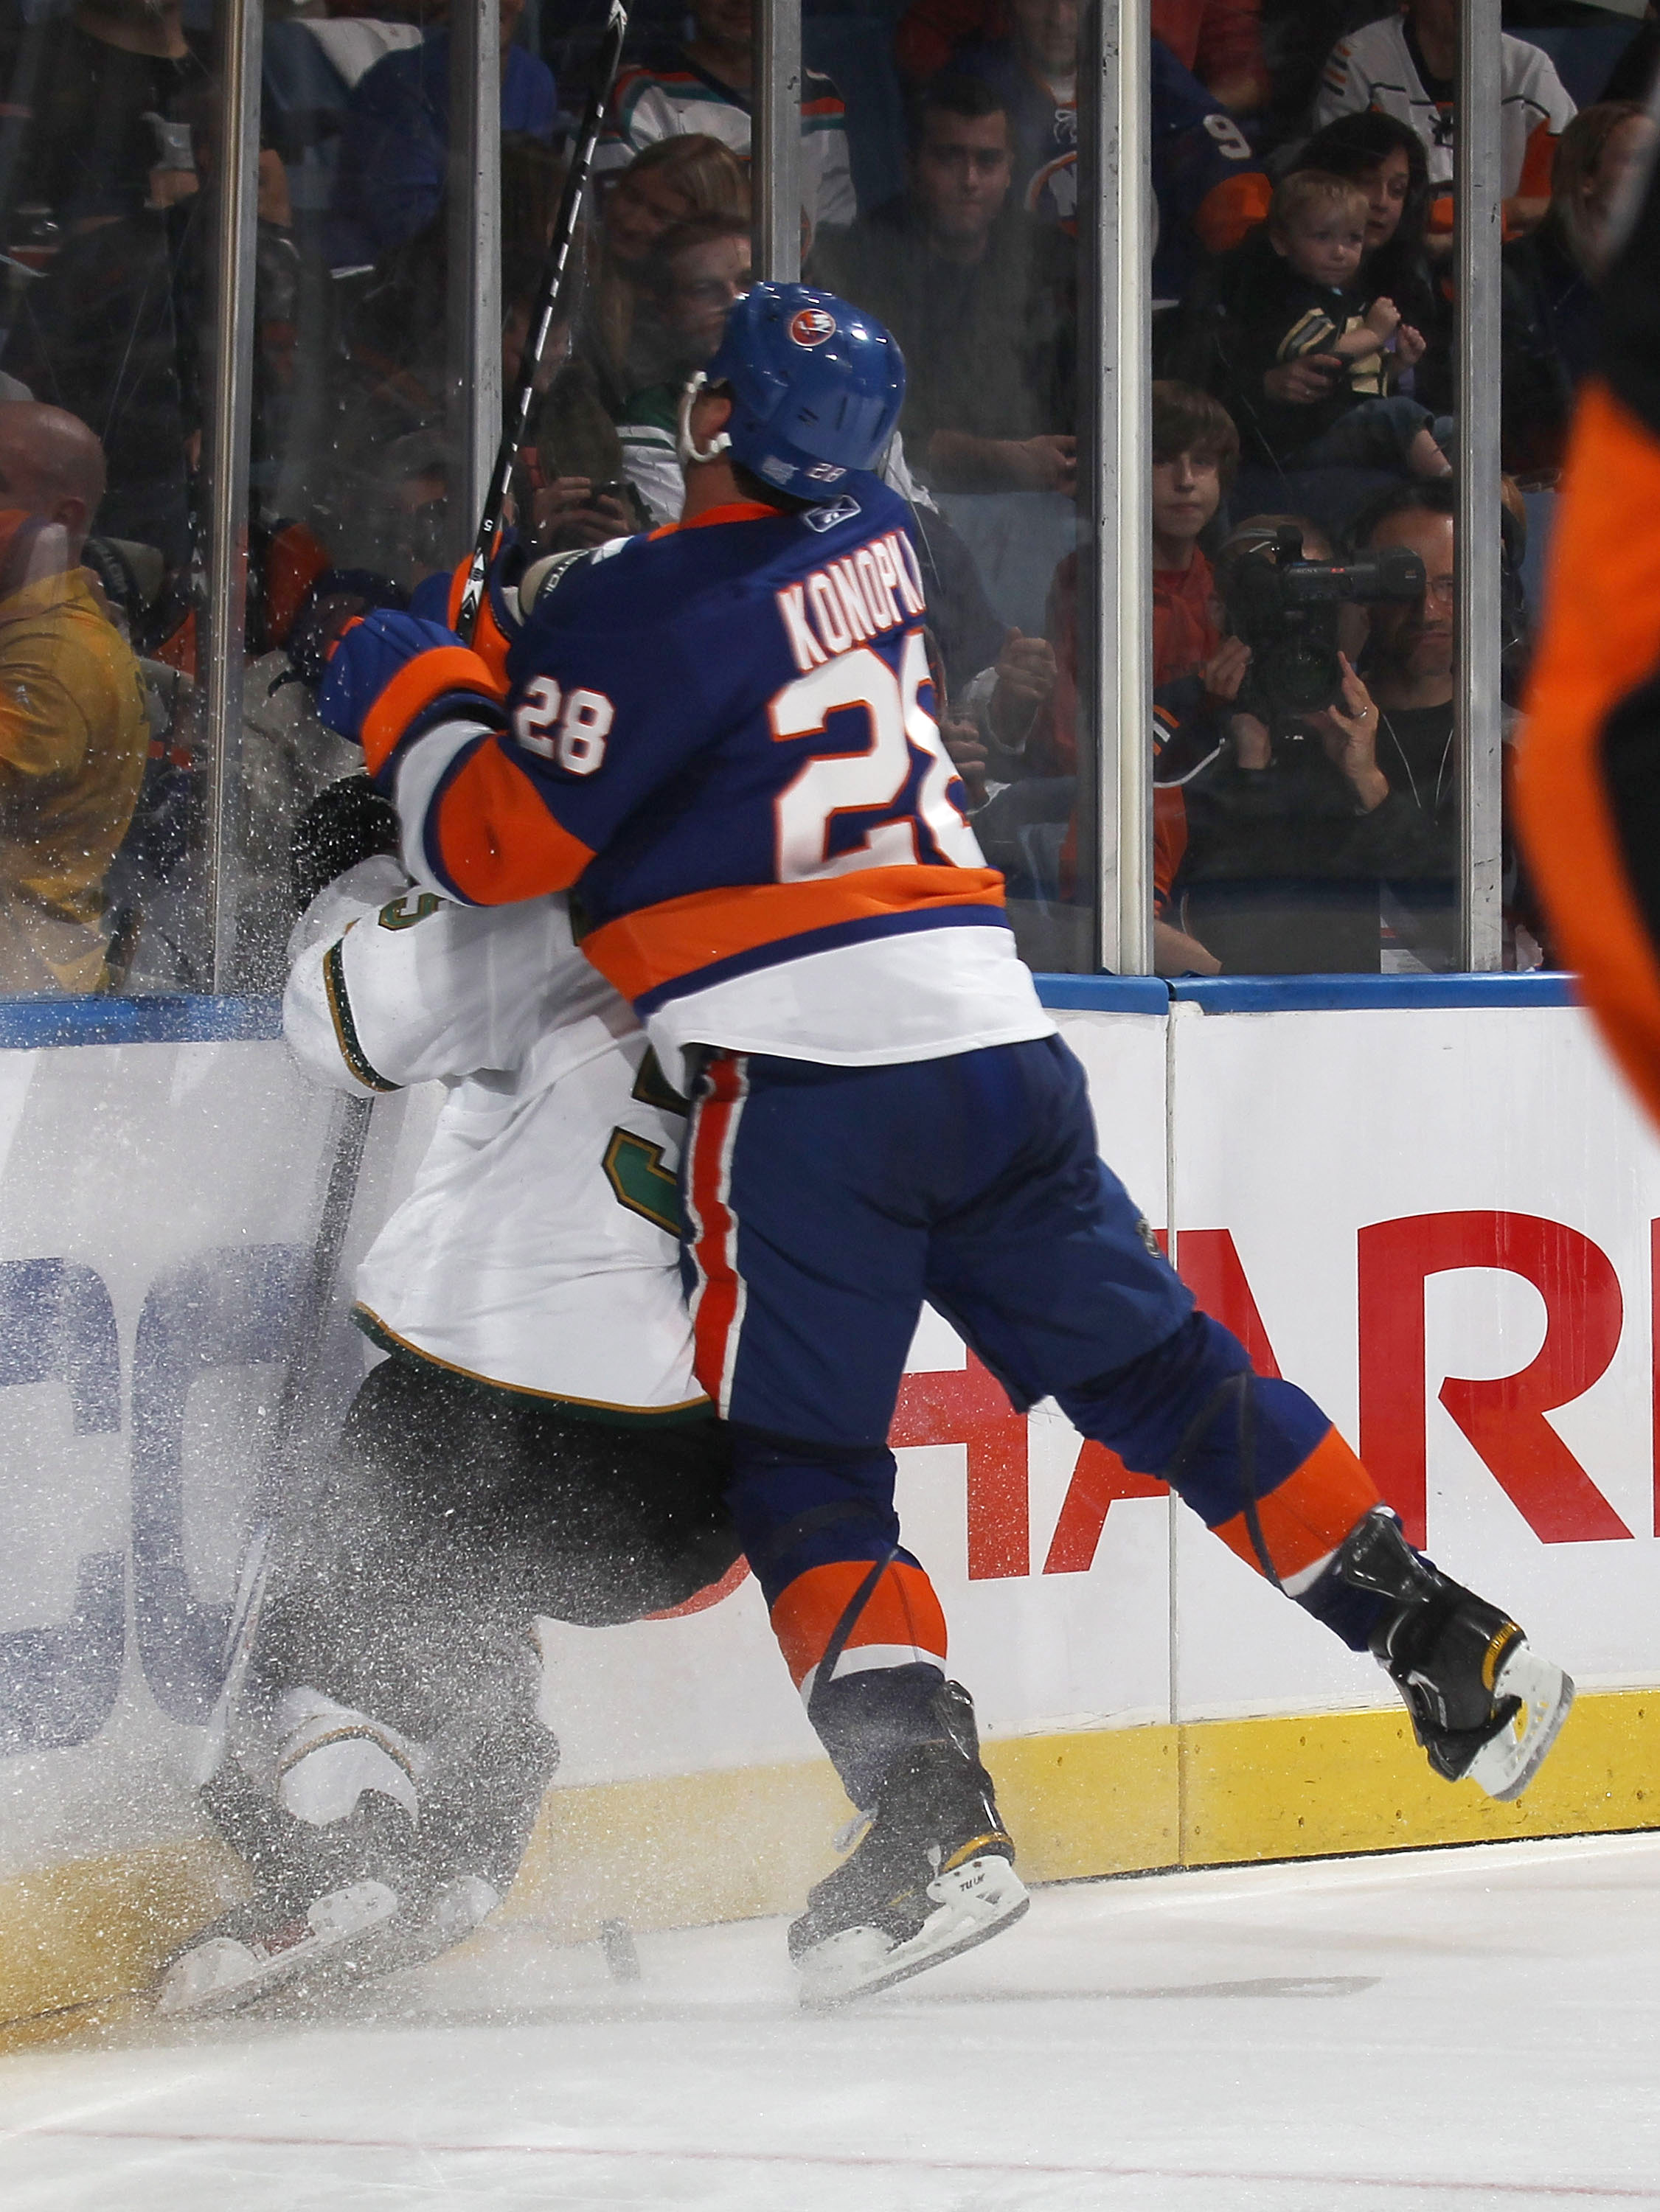 UNIONDALE, NY - OCTOBER 09:  Zenon Konopka #28 of the New York Islanders checks a Dallas Star in a game at the Nassau Coliseum on October 9, 2010 in Uniondale, New York.  (Photo by Bruce Bennett/Getty Images)